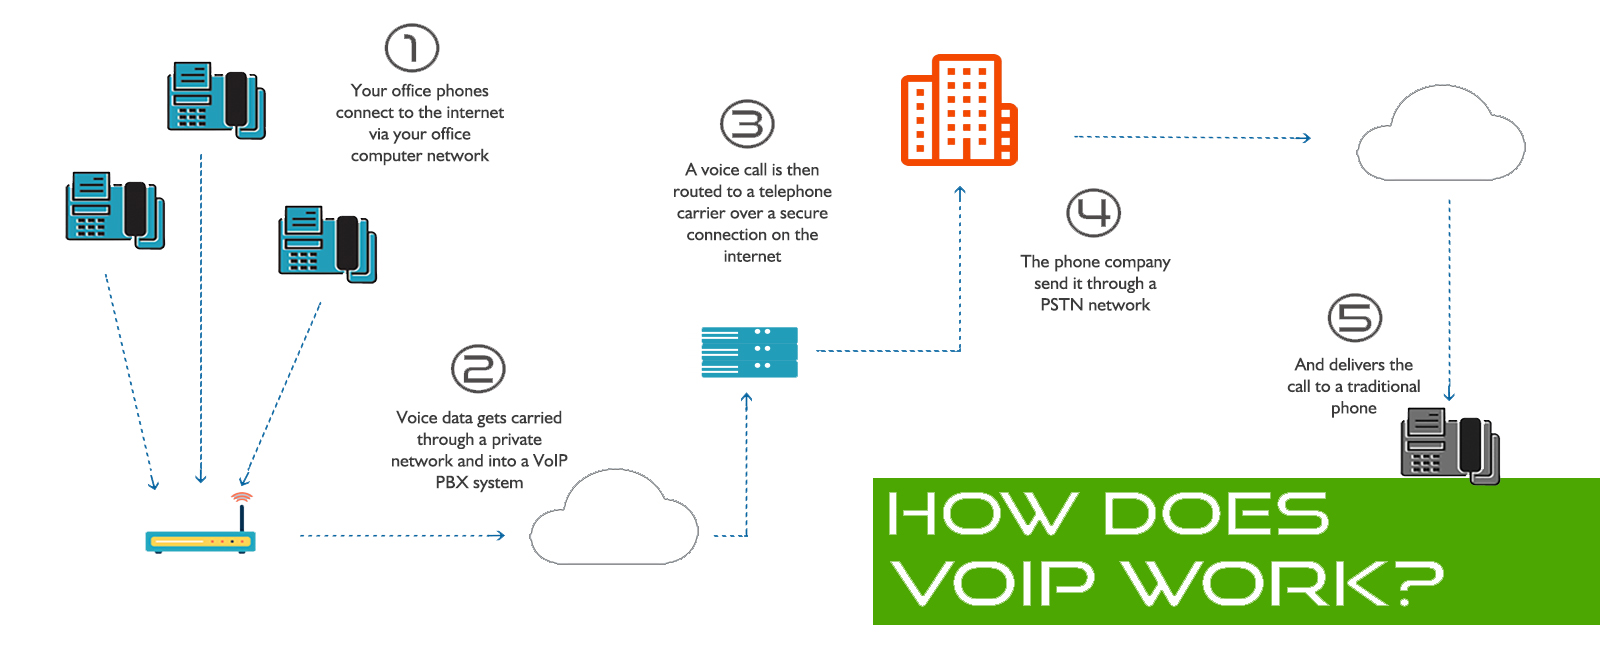 Voip Phones As Well Voice Over Ip Work Diagram On Network With Fax How Works